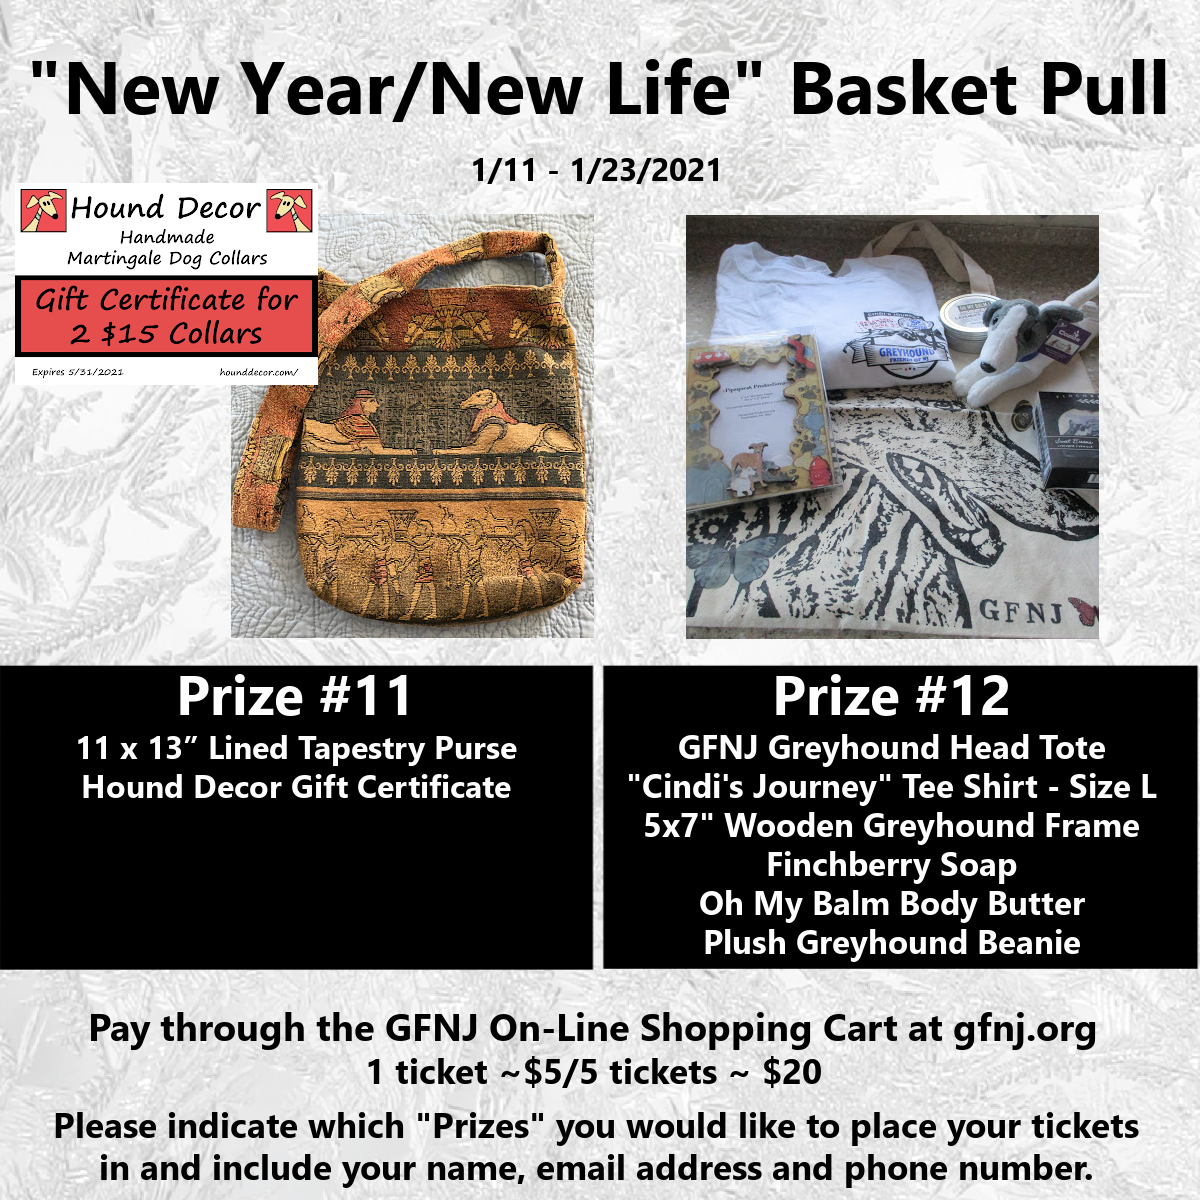 New Year/New Life Baskets 11/12